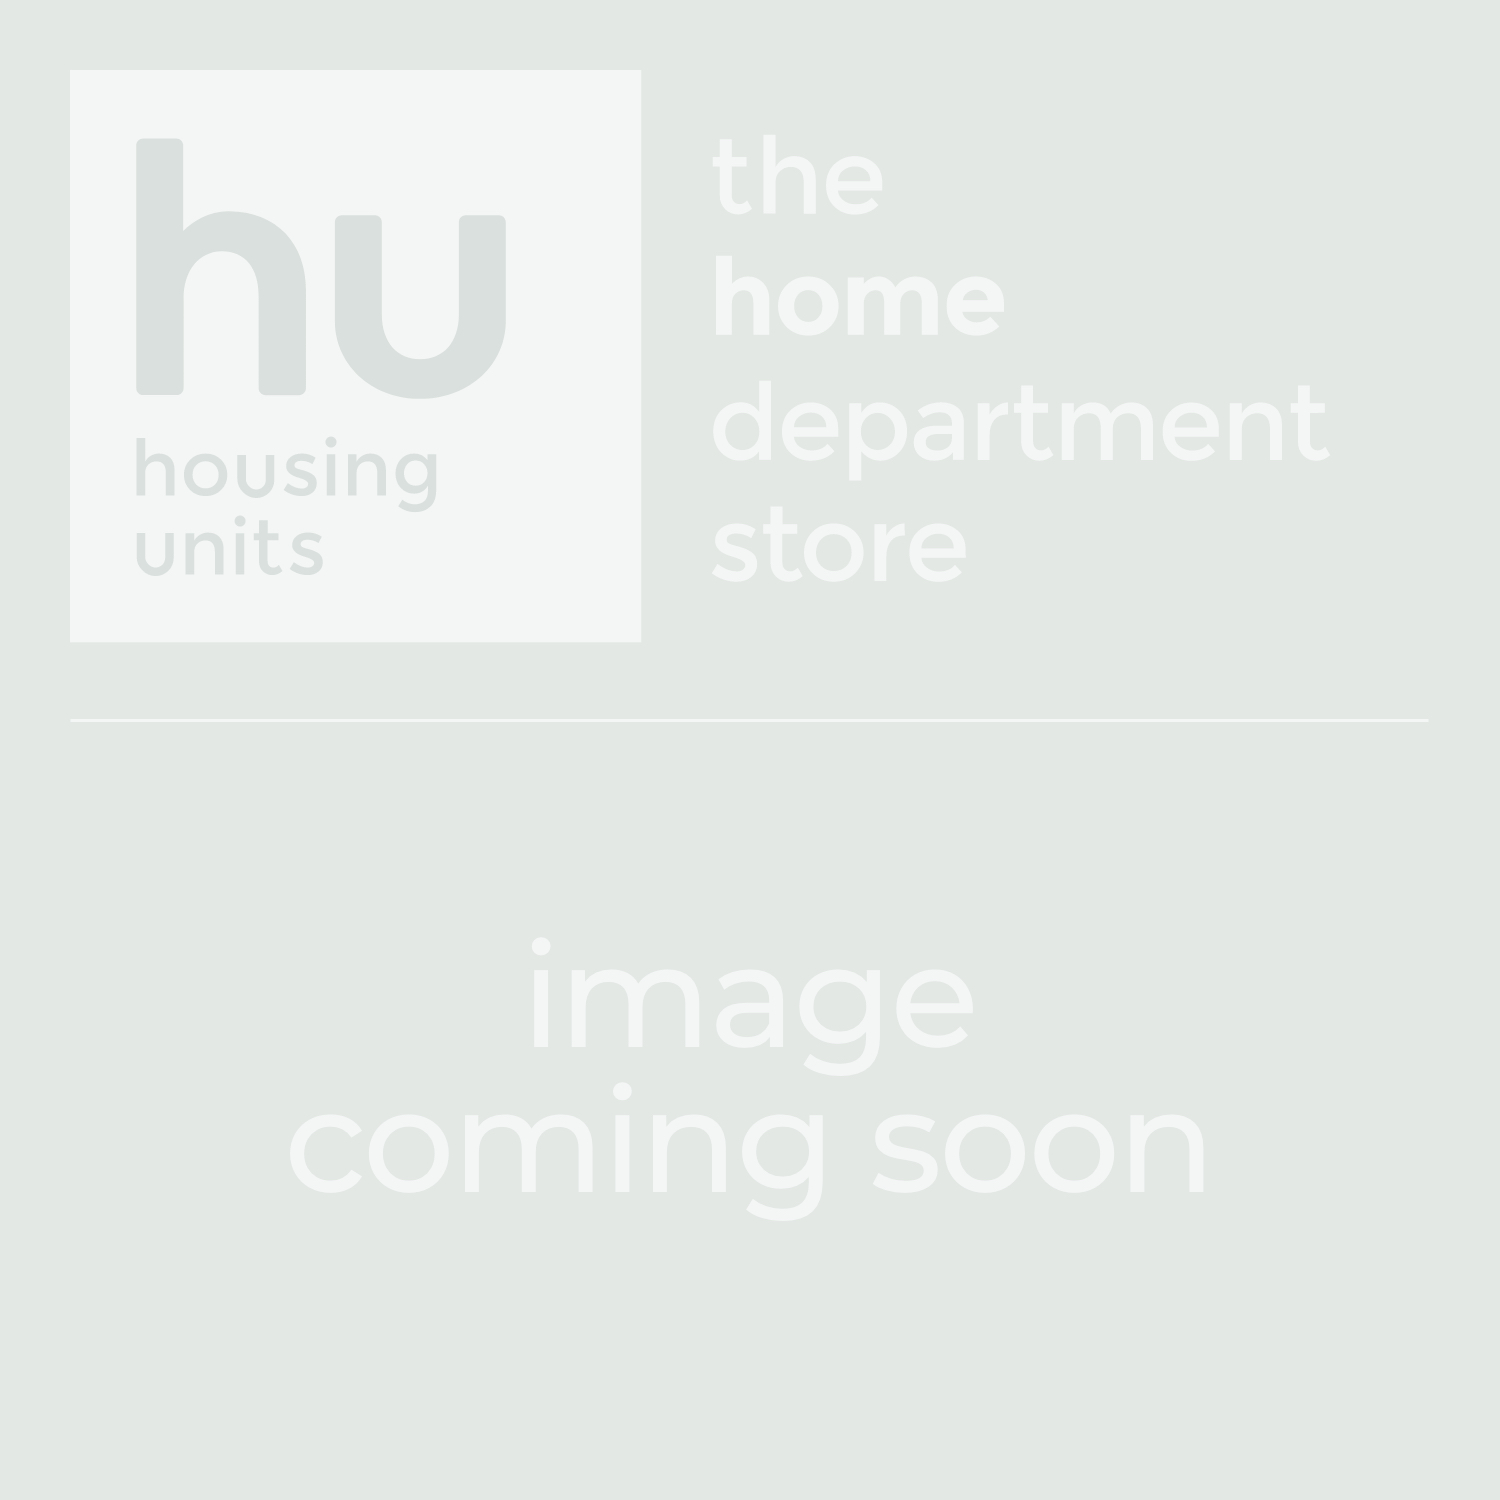 Celine Crystal & Gold 5 Light Semi Flush Ceiling Light | Housing Units